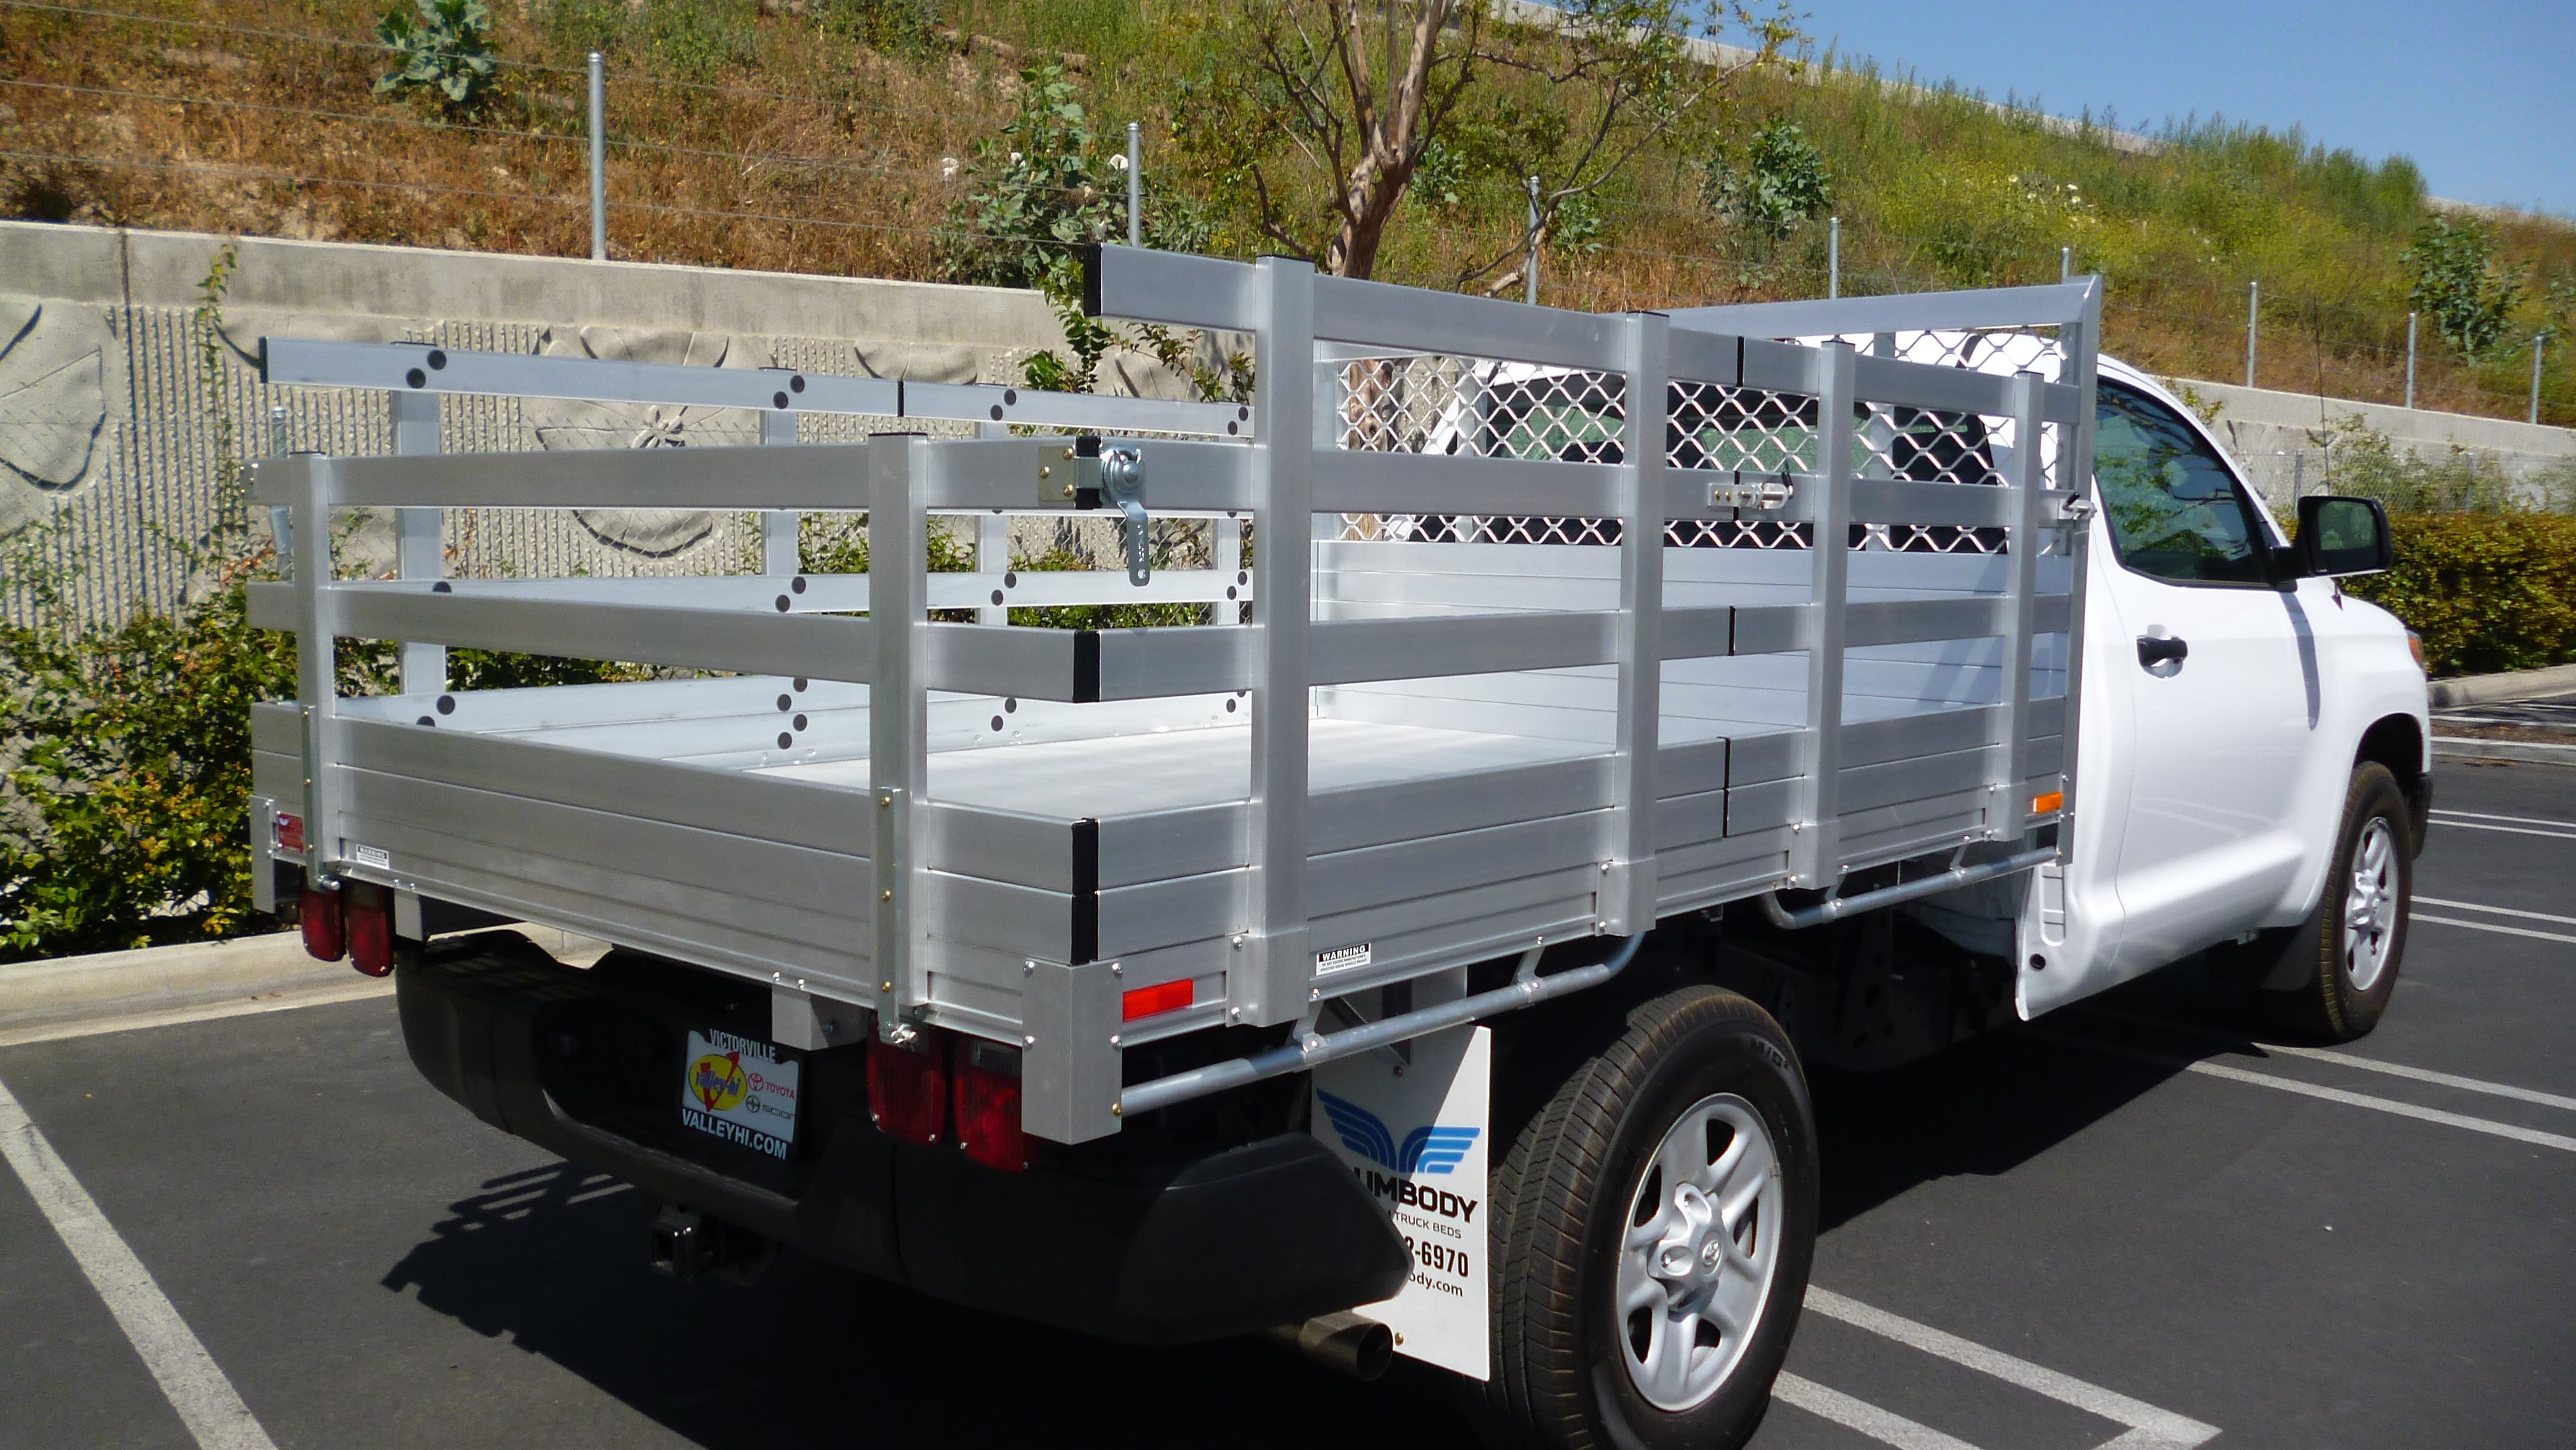 box then building bed van overland drawers pickup toolbox canada tacoma systems truck out homemade diy jobox sale grounds swanky christmas reinventing and aluminum storage drawe lockers absorbing latteral decked geneva sliding gooseneck ga for gear pull gmc organizer construction contemporary cargoease beds